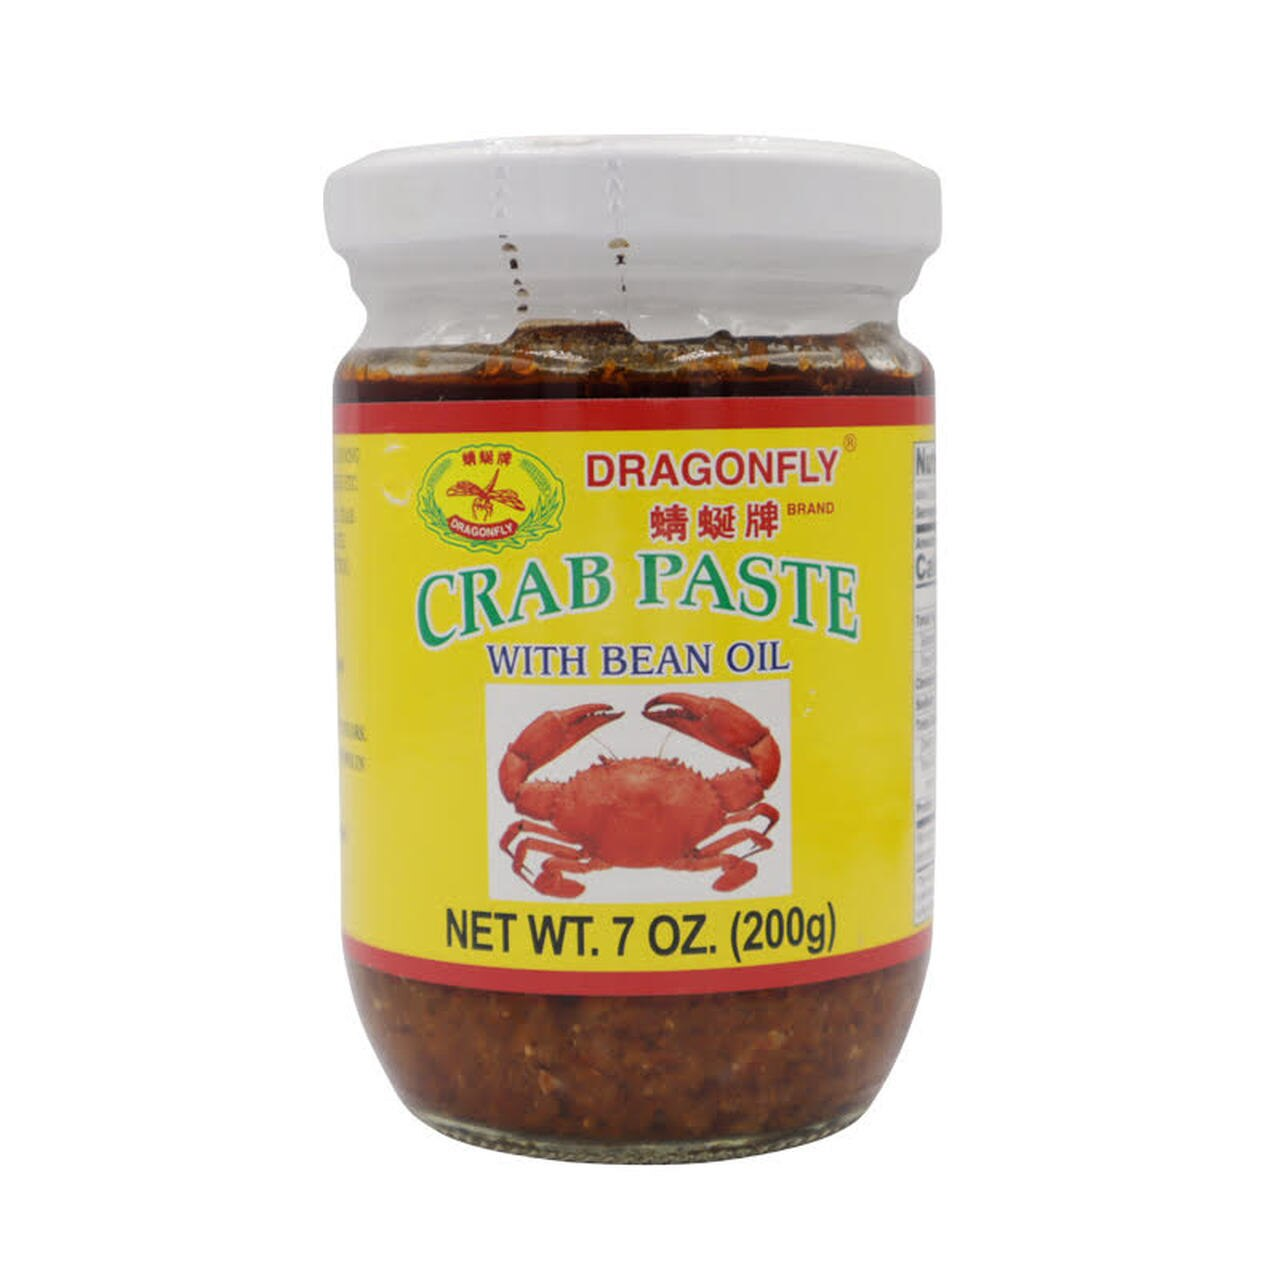 DRAGONFLY Crab Paste With Bean Oil 7 OZ